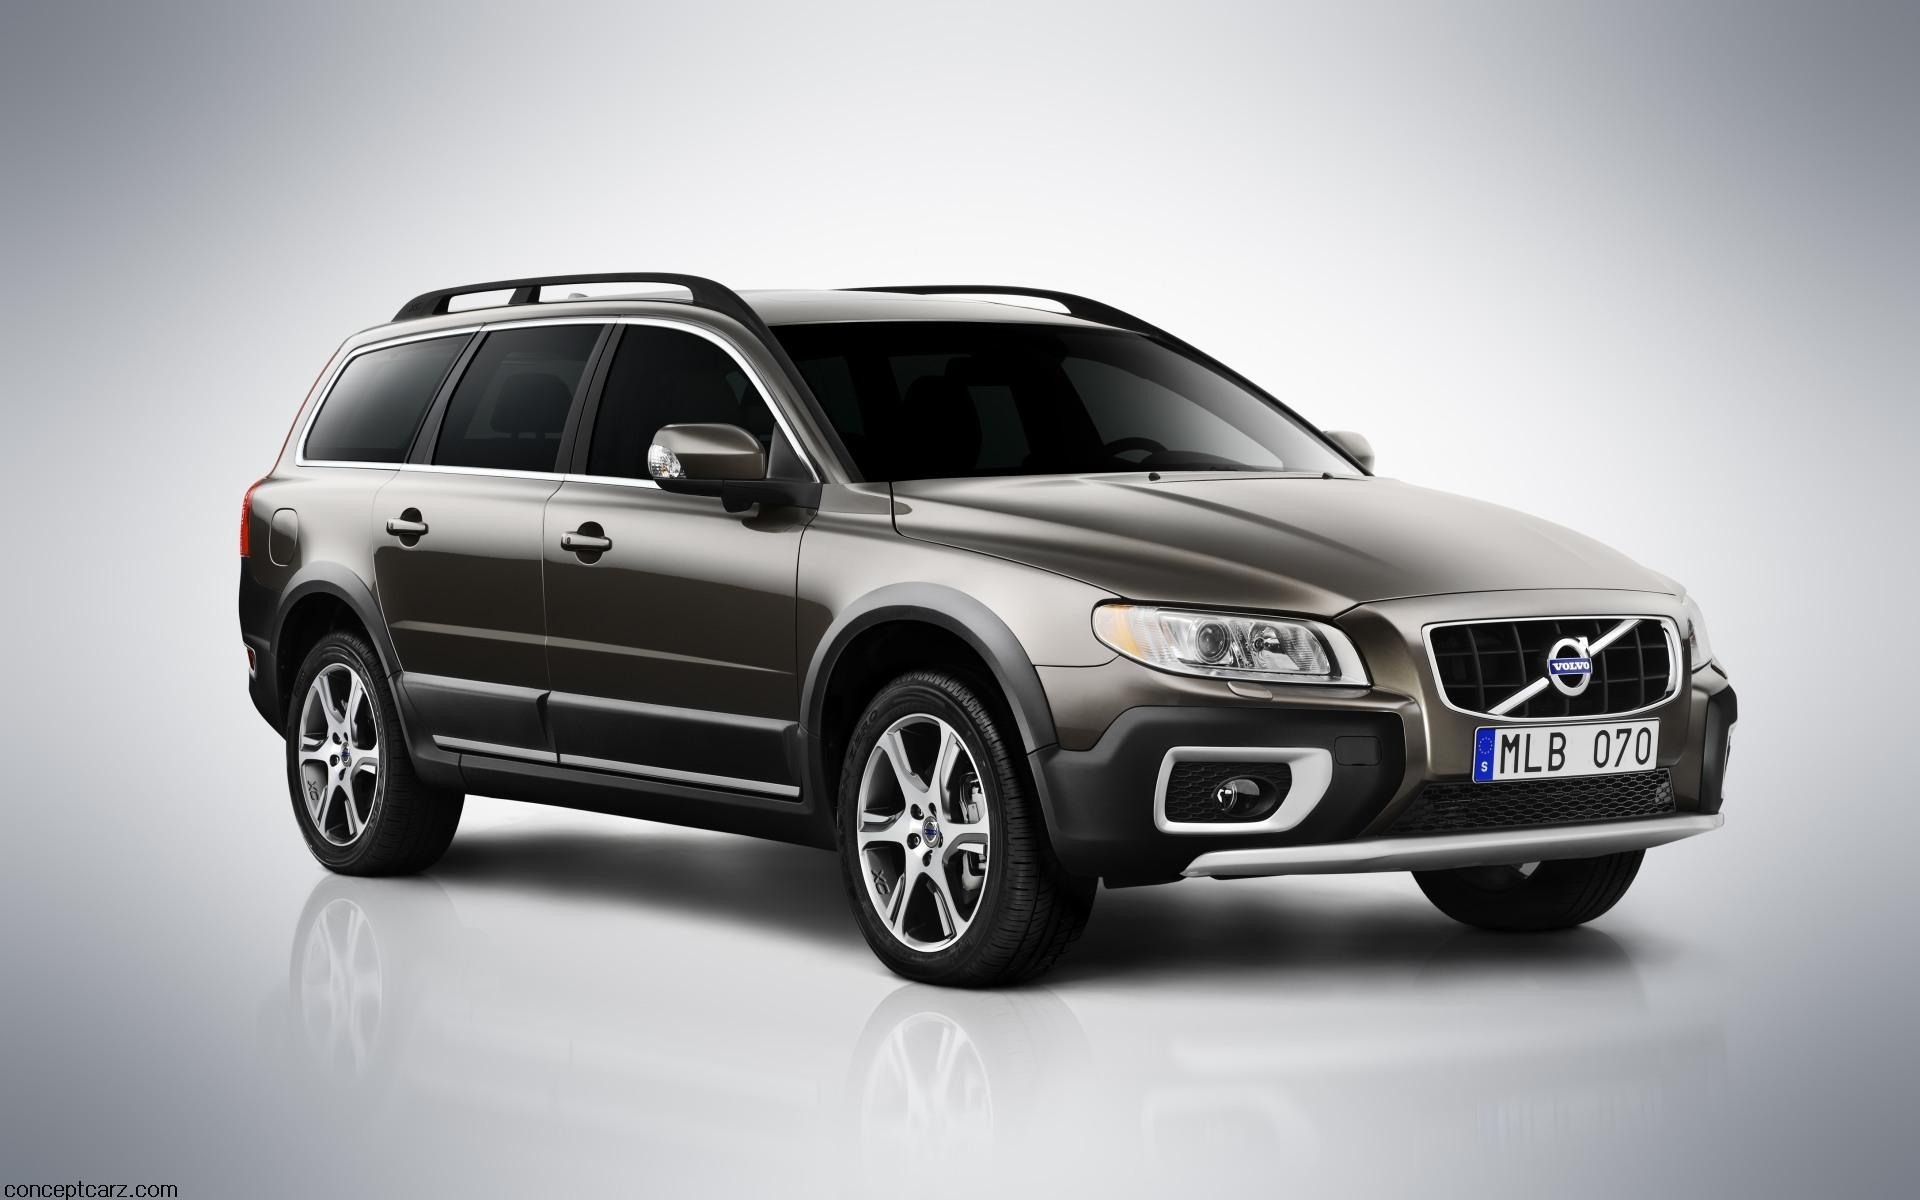 29 The Best 2020 All Volvo Xc70 Review and Release date